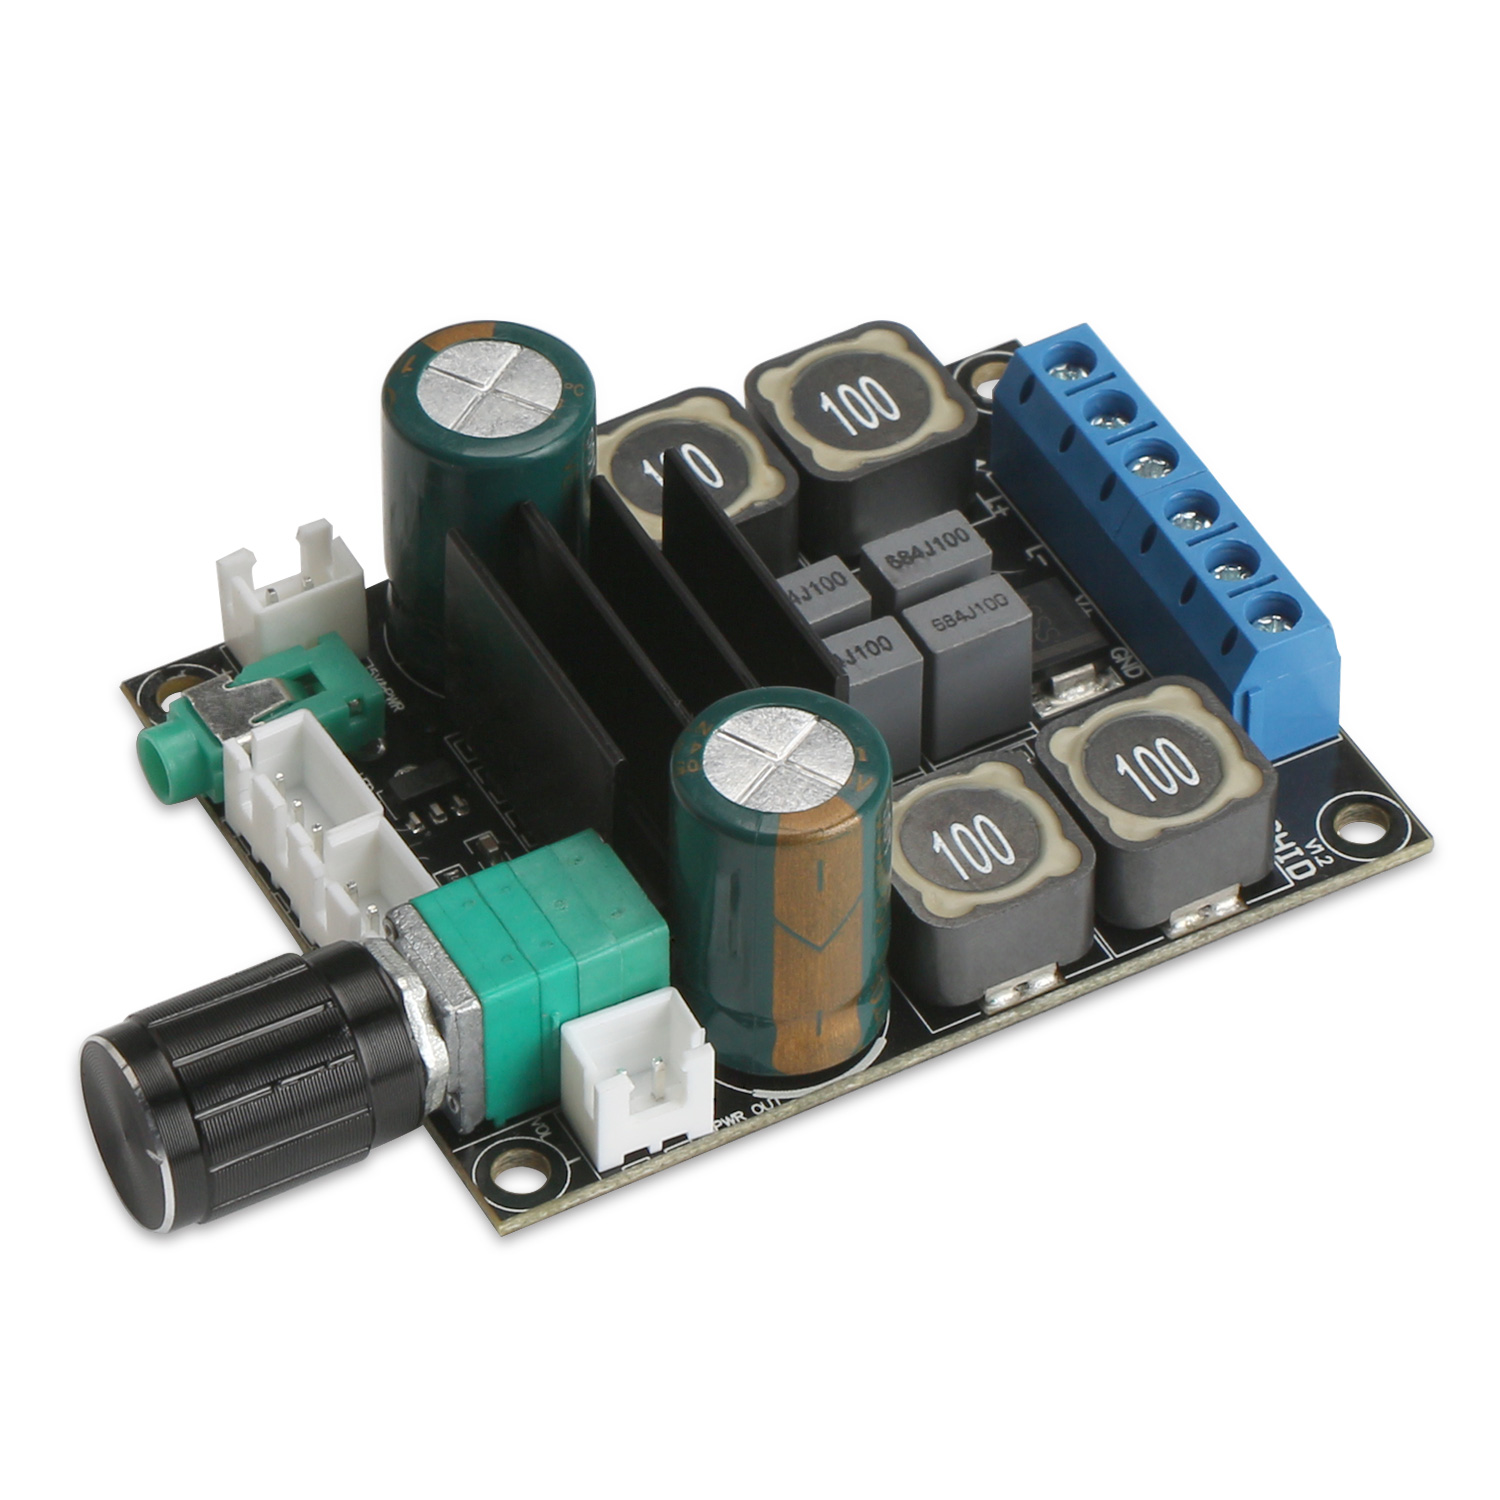 Dc 12v 24v 20 Dual Channel Digital Amplifier Board 50w Hifi Stereo Supply 5v Vcc And To 30v Input Led Driver Application Circuits Audio Tpa3116 Speaker